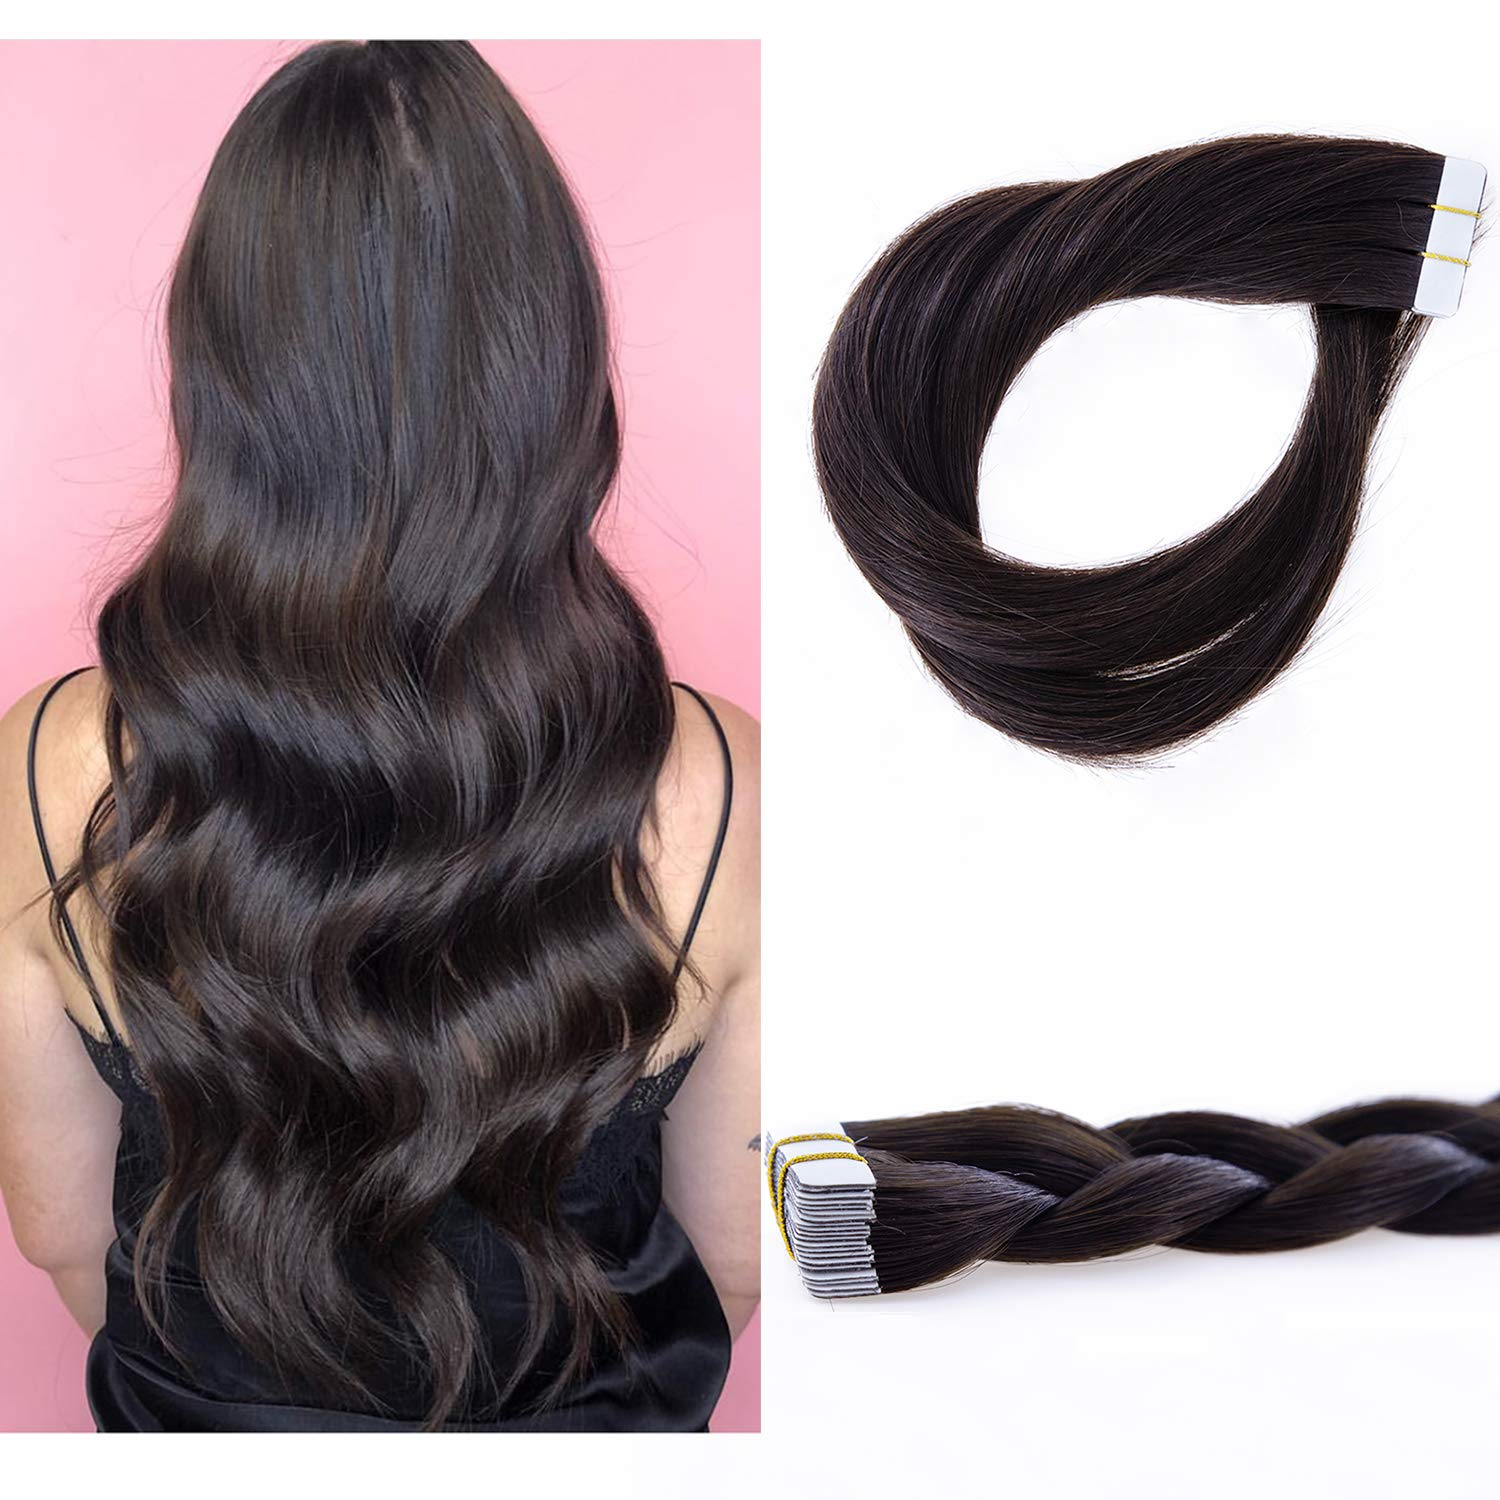 Lacerhair 16 inch Seamless Remy Tape in Human Hair Extensions Balayage Natural PU Skin Weft 100% Real Virgin Human Hair Color #Darkest Brown Double Side 50g 20pcs/set